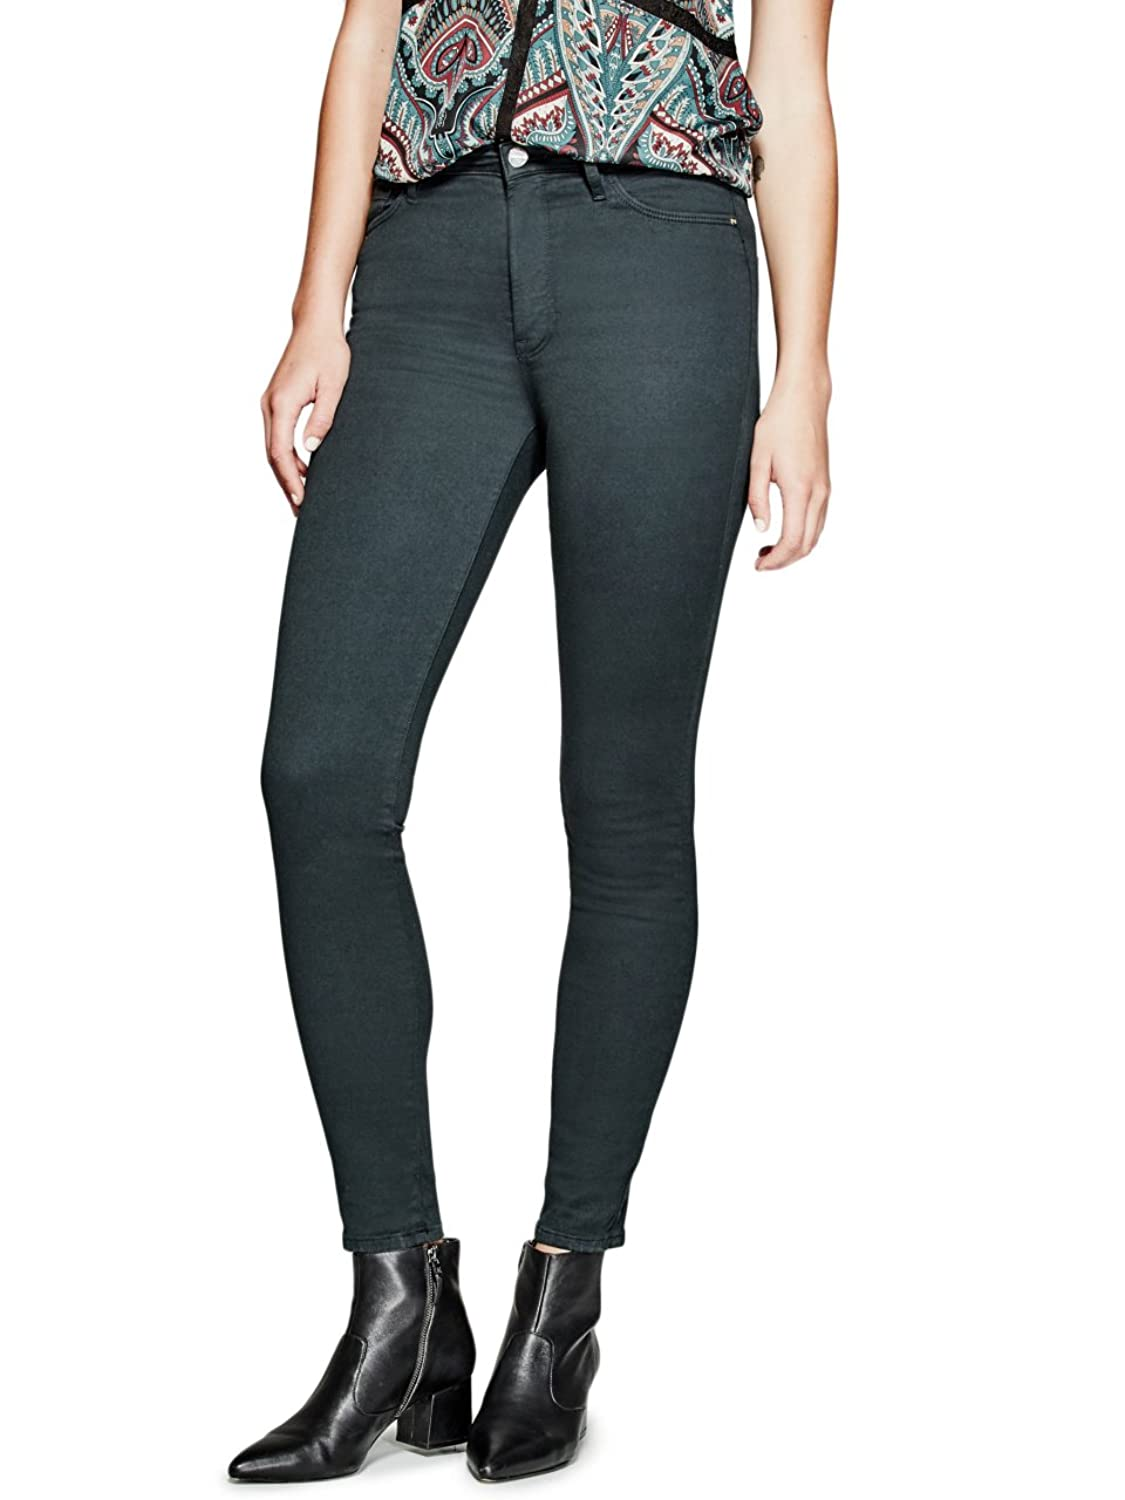 Marciano The Stiletto No. 97 Jean